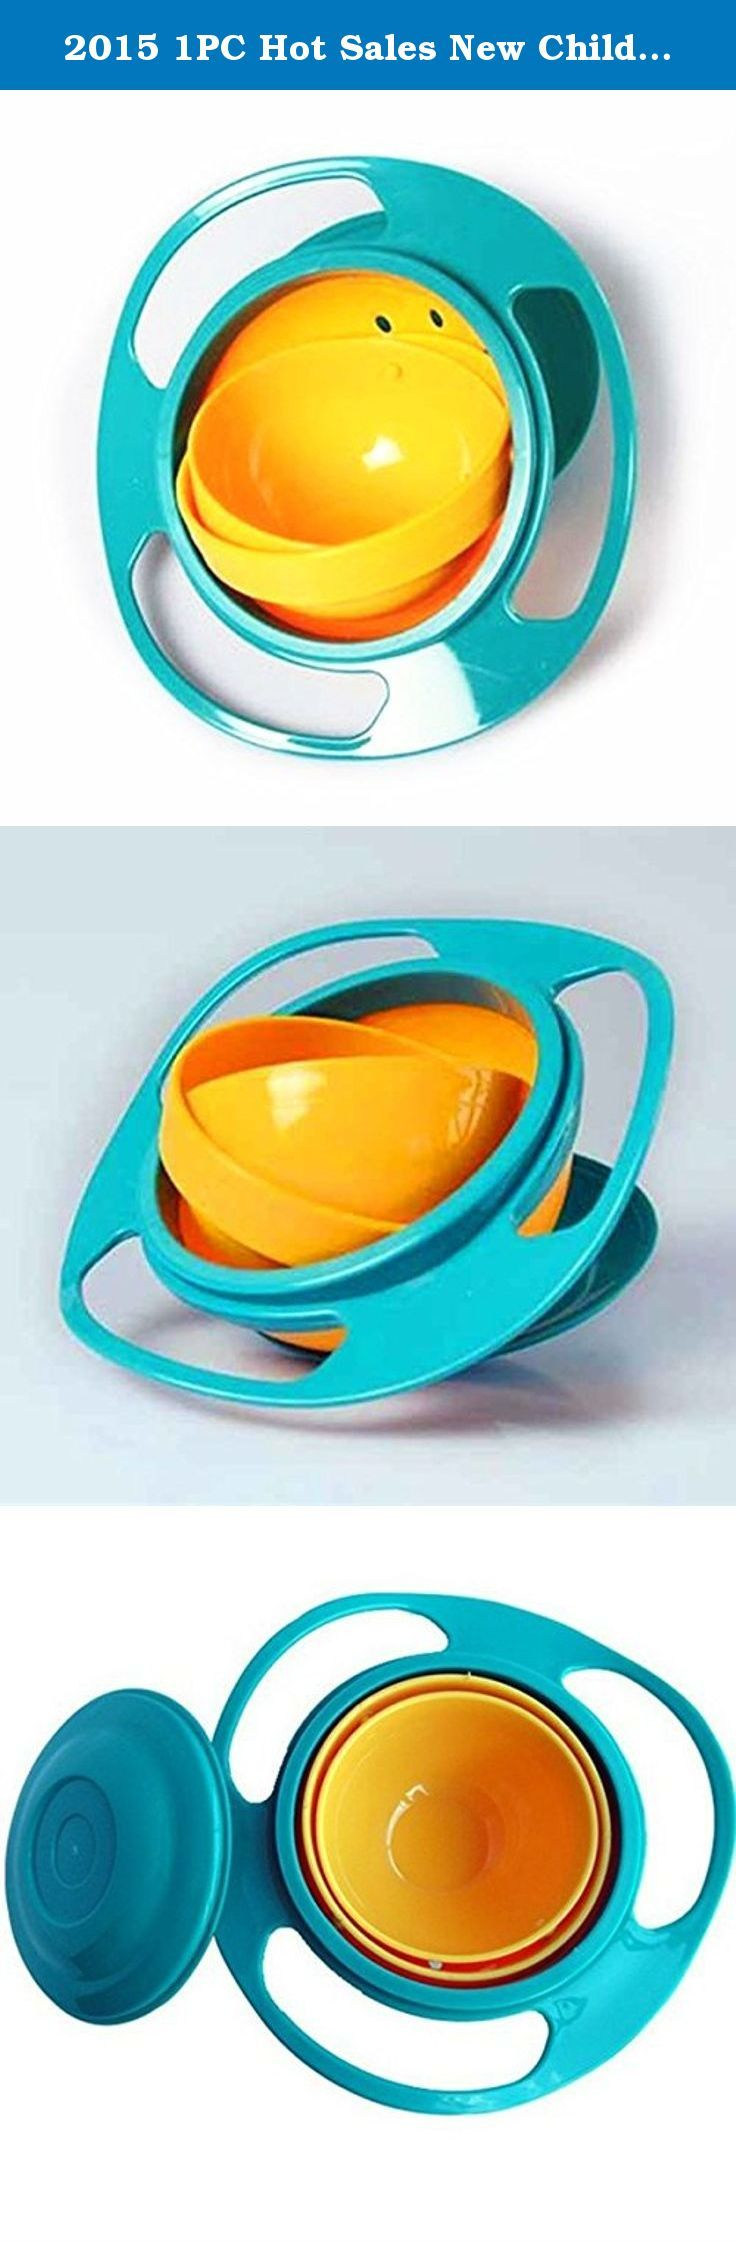 "2015 1PC Hot Sales New Children Kid Baby Toy Universal 360 Rotate Spill-Proof Bowl Dishes Free Shipping&Wholesales. Type : Dinnerware Age Group : 6 months"">Babies,> 6 months Classification : Bowl Pattern Type : Patchwork Brand Name : Bowl Material : Plastic Material Feature : Phthalate Free Certification : CIQ Function : Bowl Model Number : New Color : Bule Type : Dinnerware Quantity : 1PC Material : ABS Plastic Size : 17.5*6 CM (L*H) Product Description 1PC Hot Sales New Children Kid…"